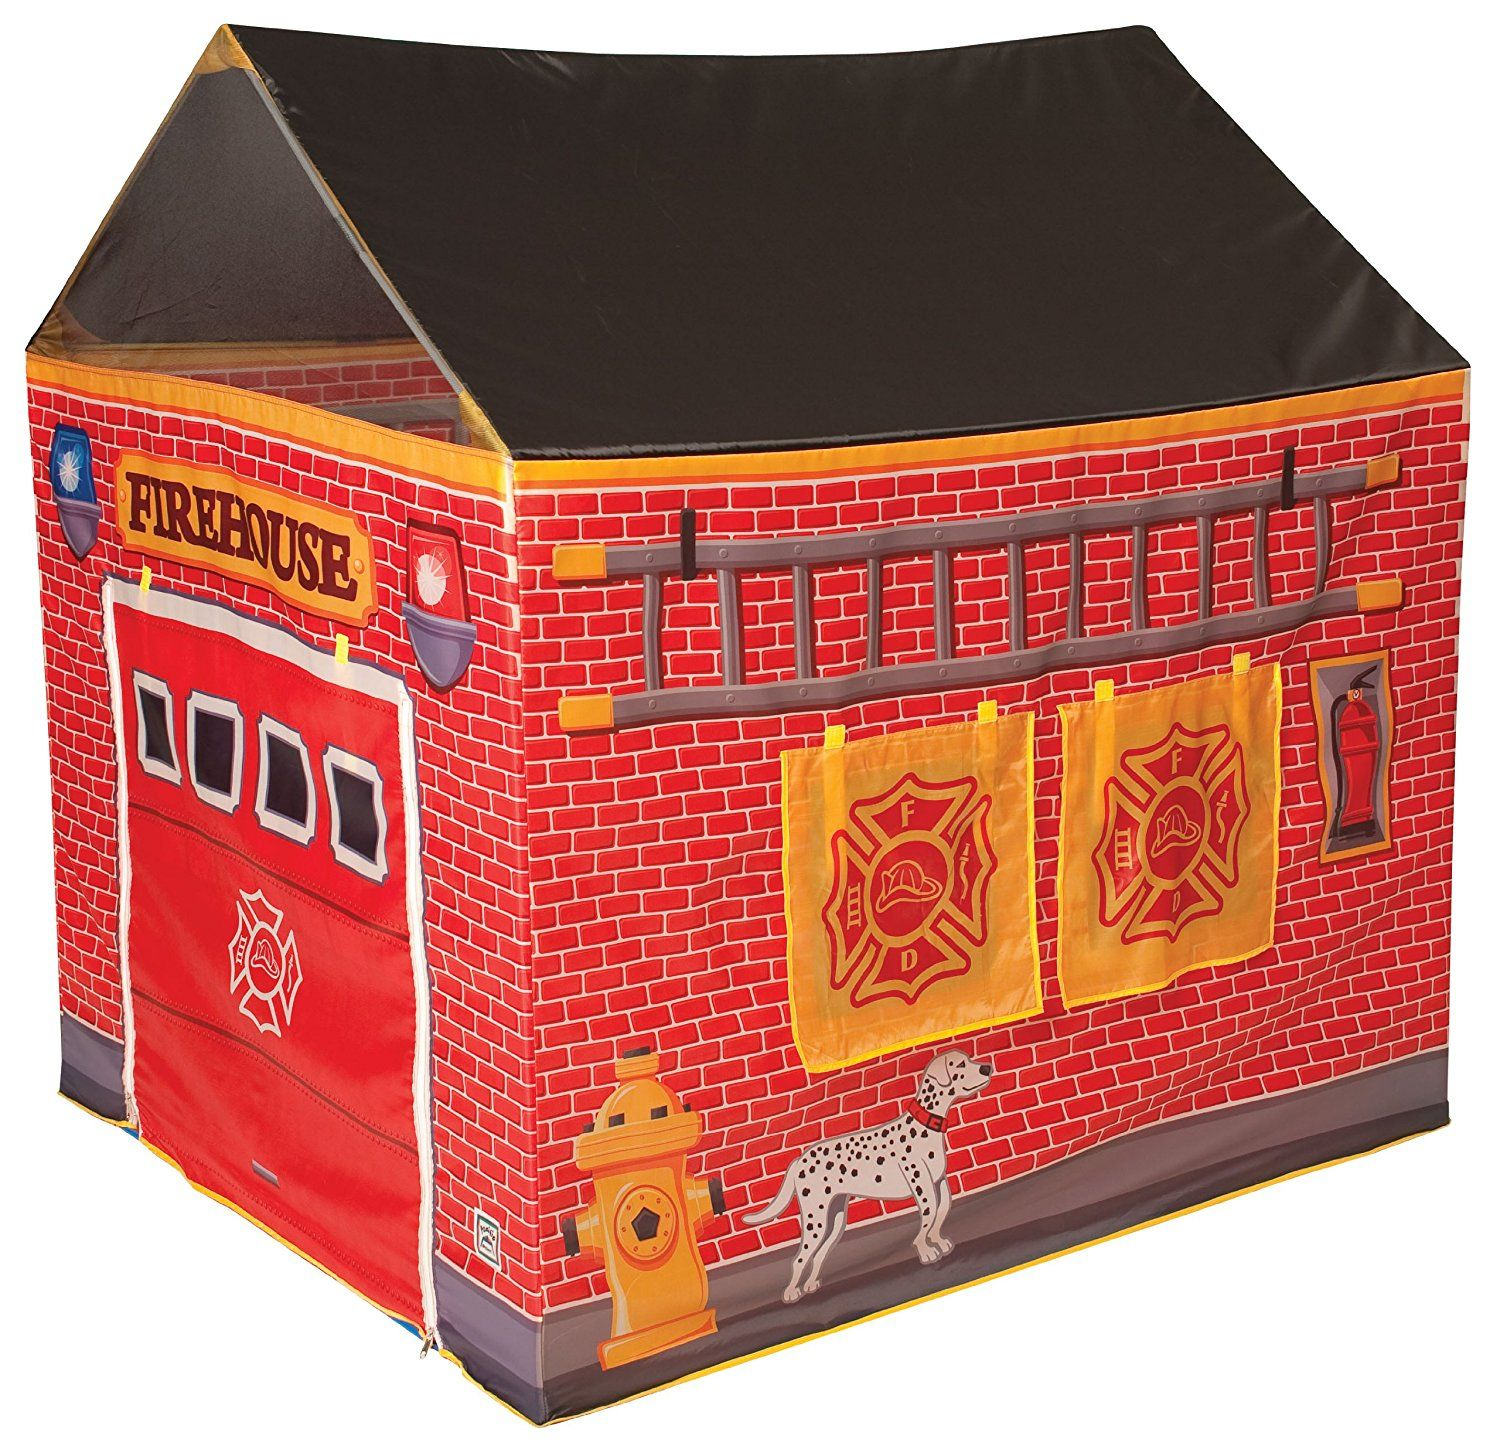 Fire station house tent toys games kids